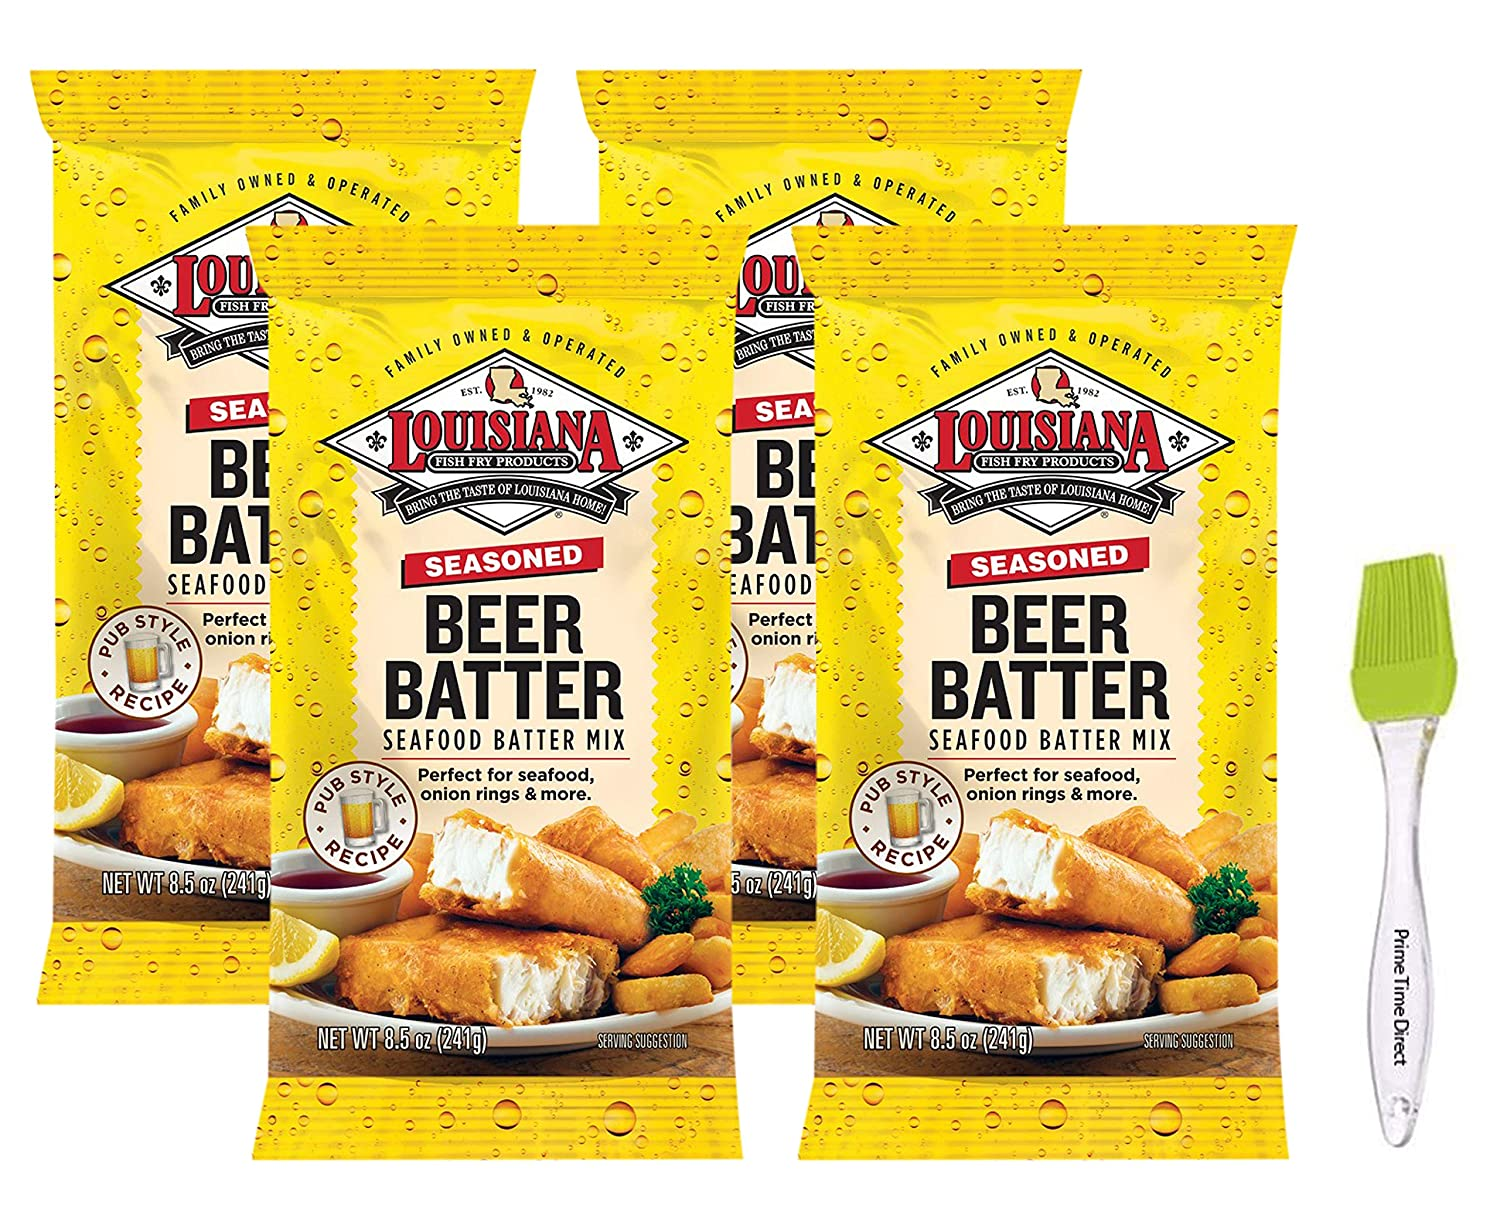 Louisiana Fish Fry Seasoned Beer Batter Mix 8.5 oz (Pack of 4) Bundled with Prime Time Direct Silicone Basting Brush in a PTD Sealed Bag